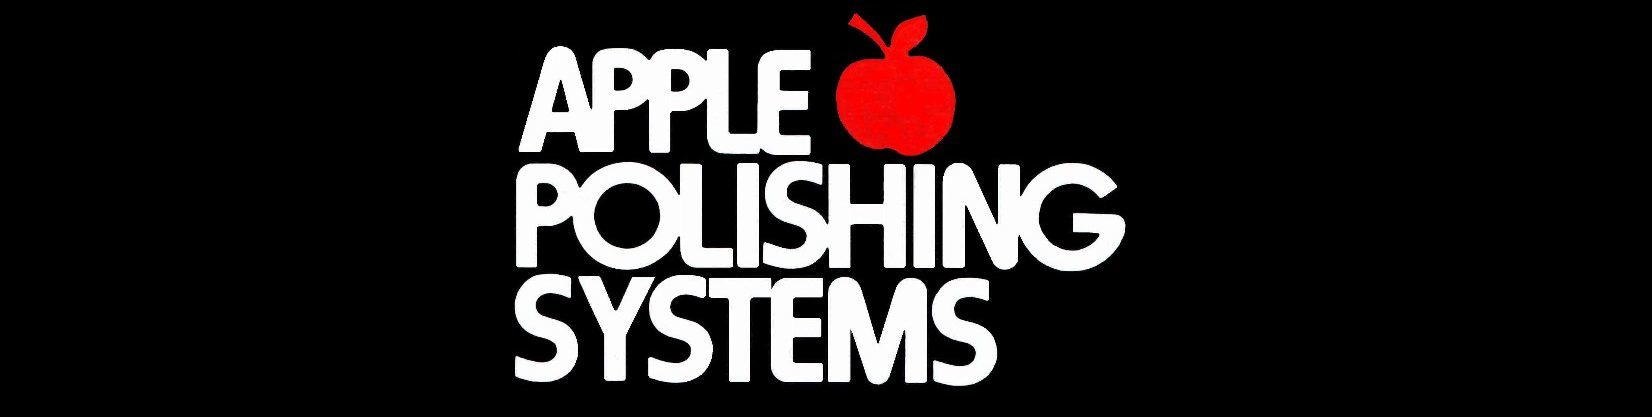 Apple Polishing Systems